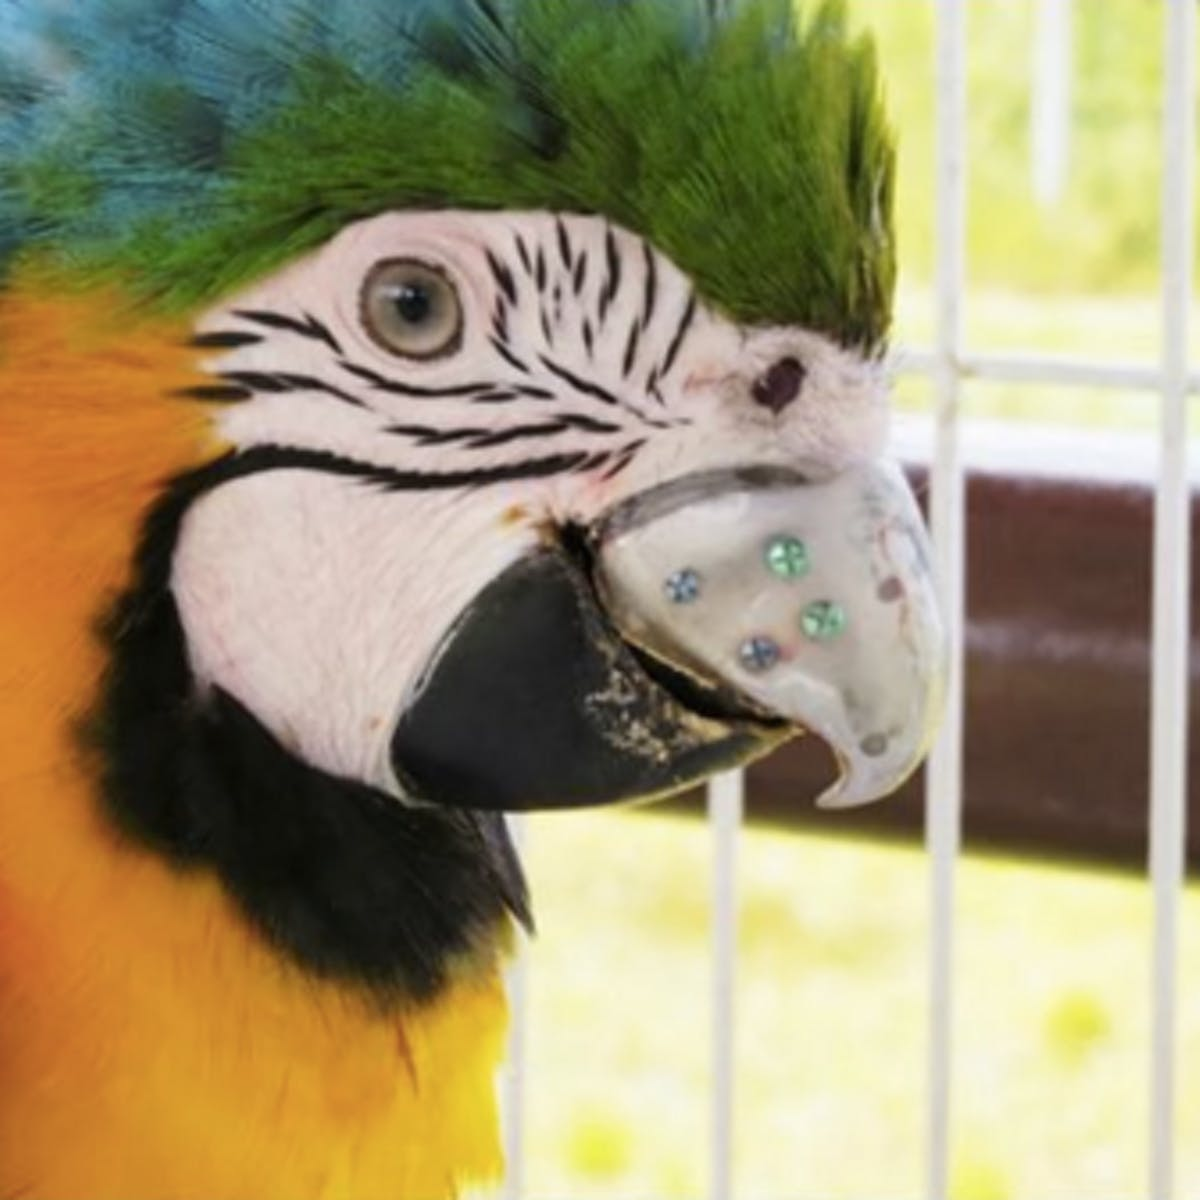 3D Printing Turned This Captive Parrot Into a Titanium